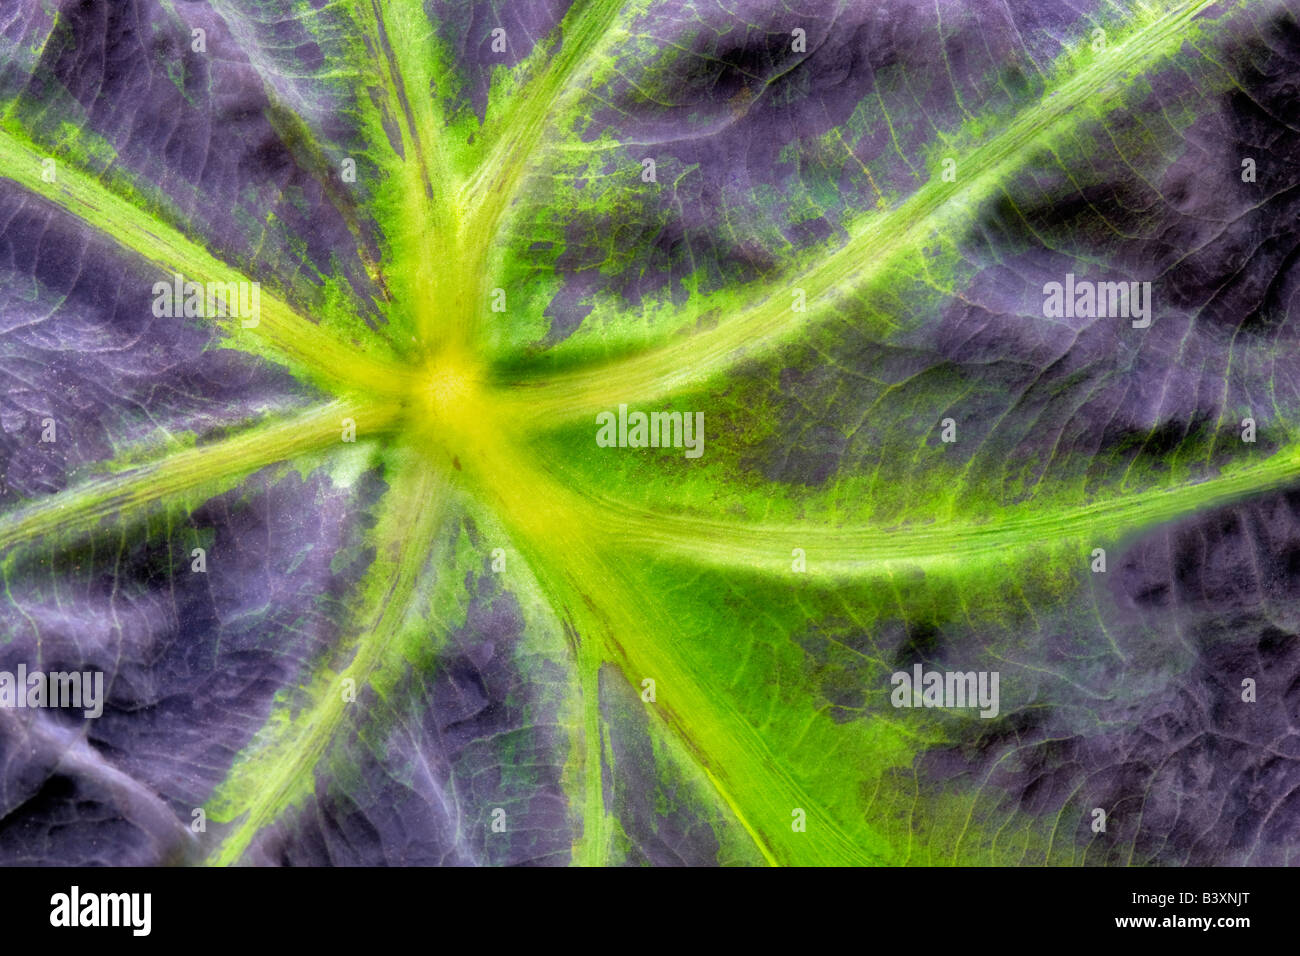 Close up of leaf veins of Taro plant Hugfhes Water Gardens Oregon - Stock Image